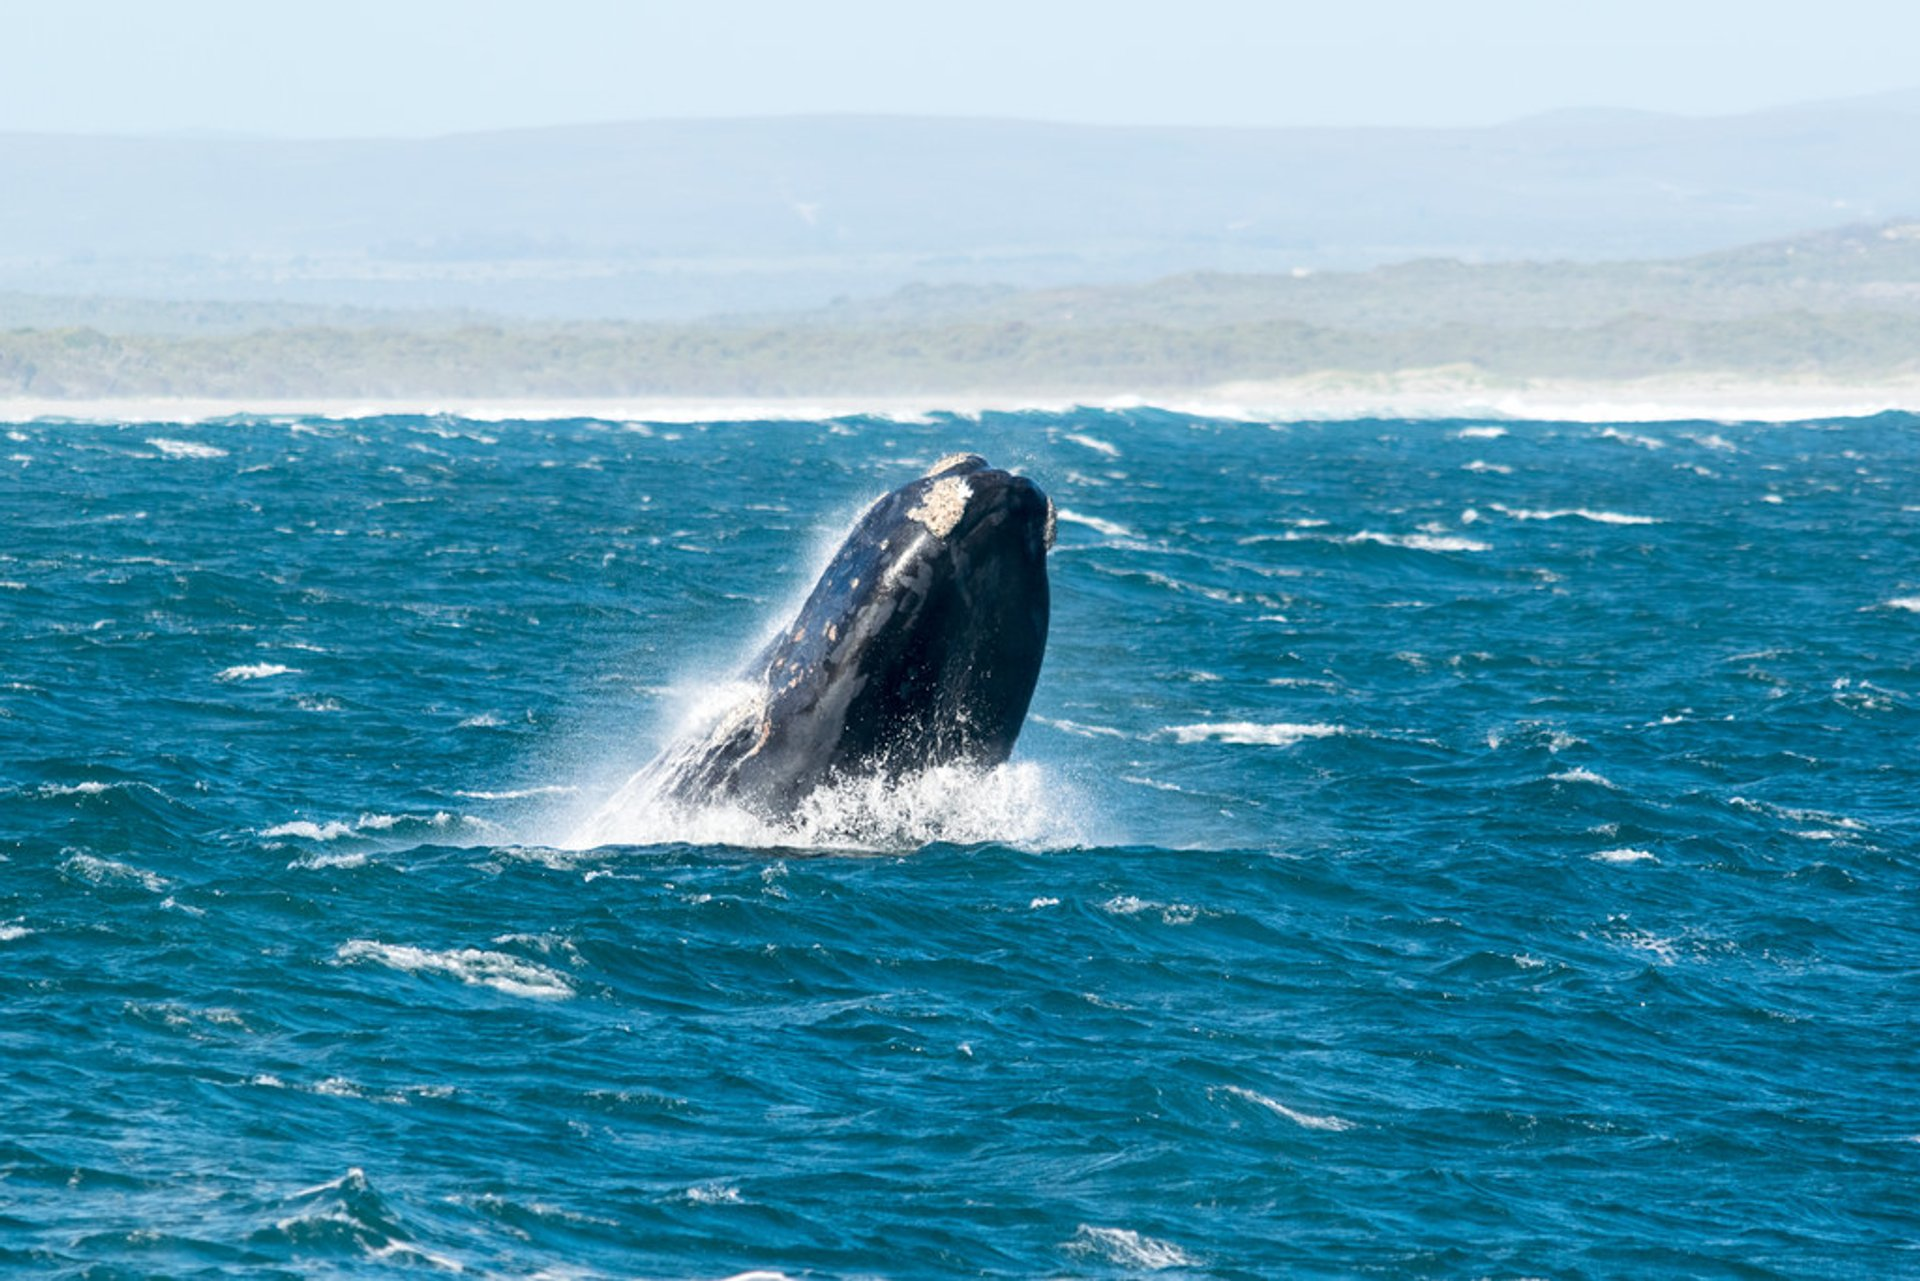 Land-Based Whale Watching in Cape Town 2019 - Best Time